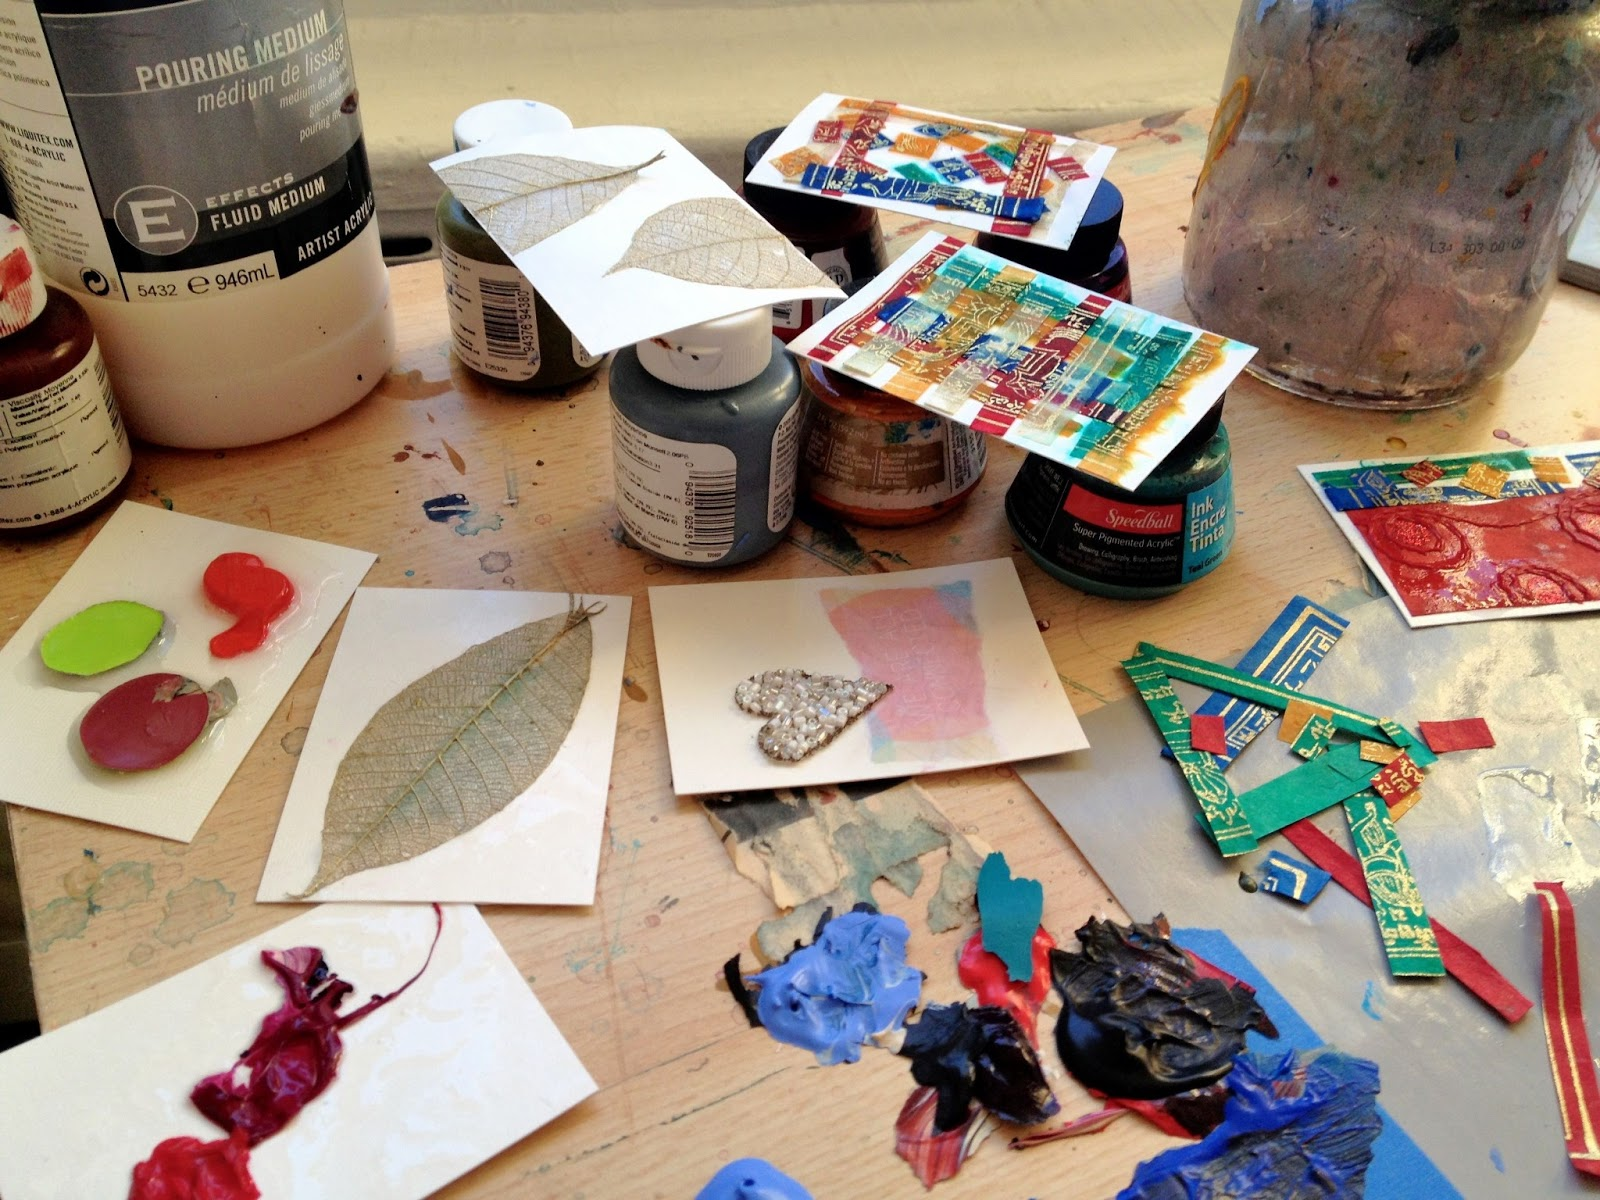 art therapy spot artist trading cards atc s building community